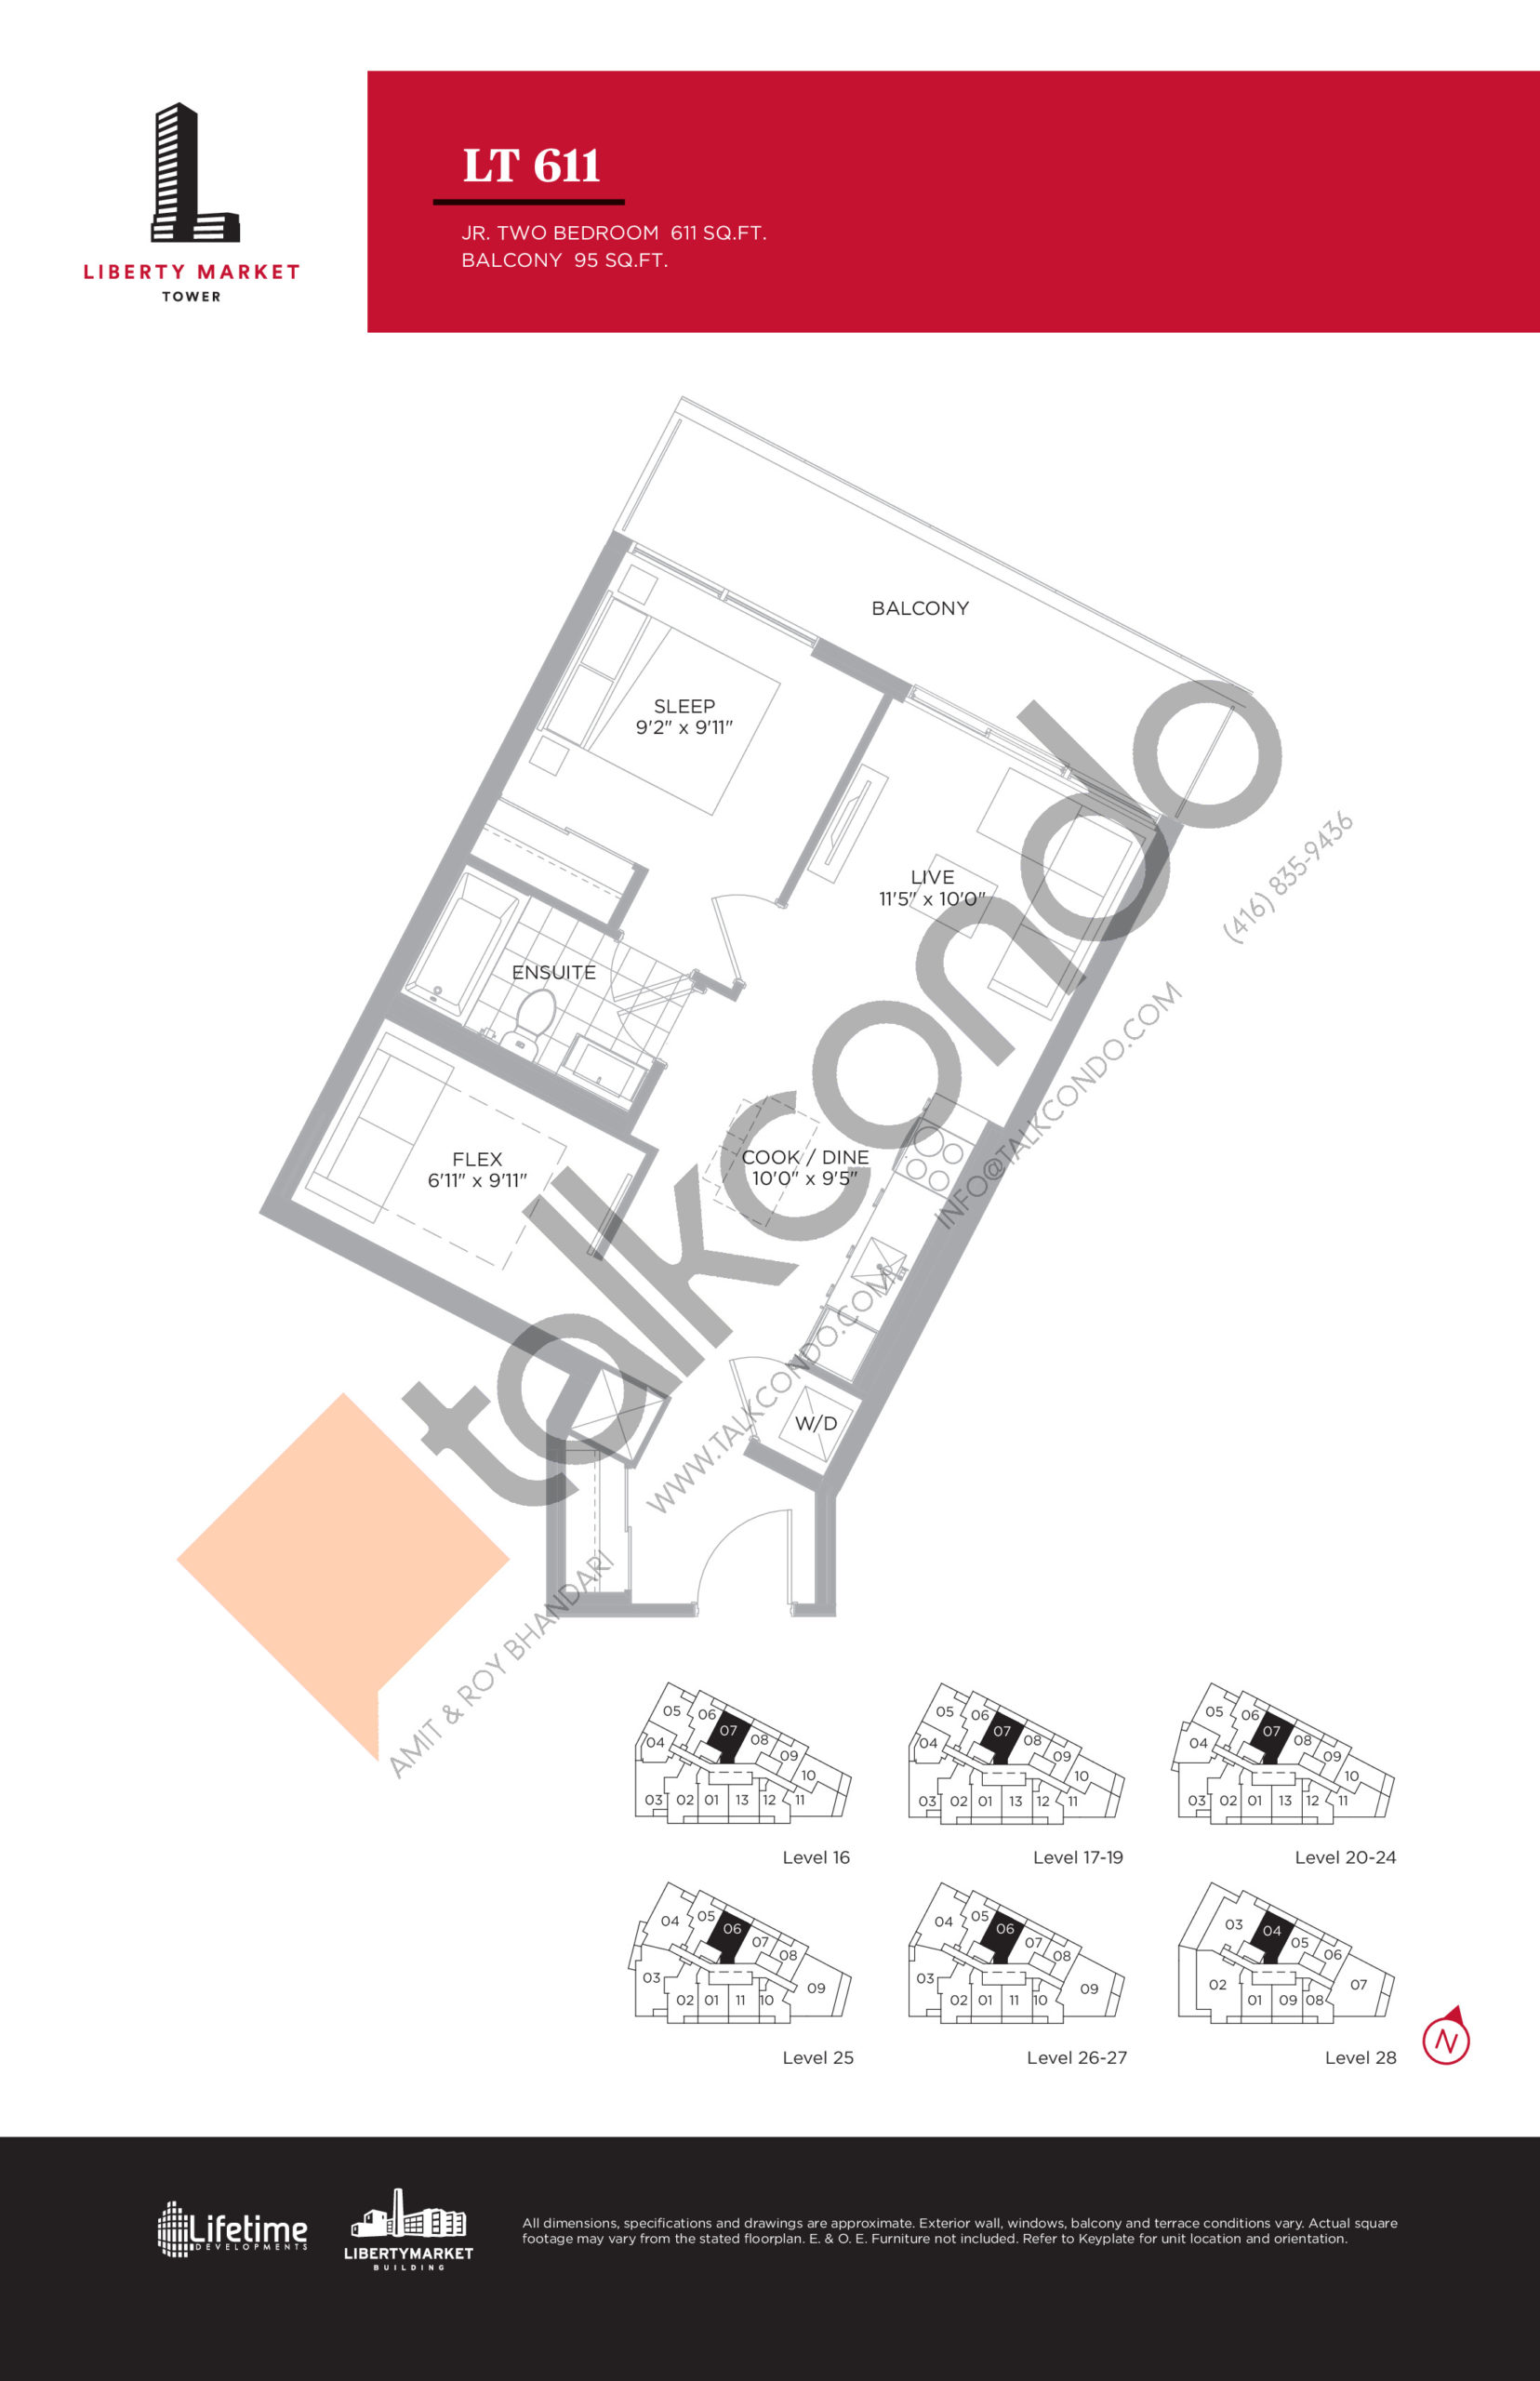 LT 611 - Tower Collection Floor Plan at Liberty Market Tower Condos - 611 sq.ft